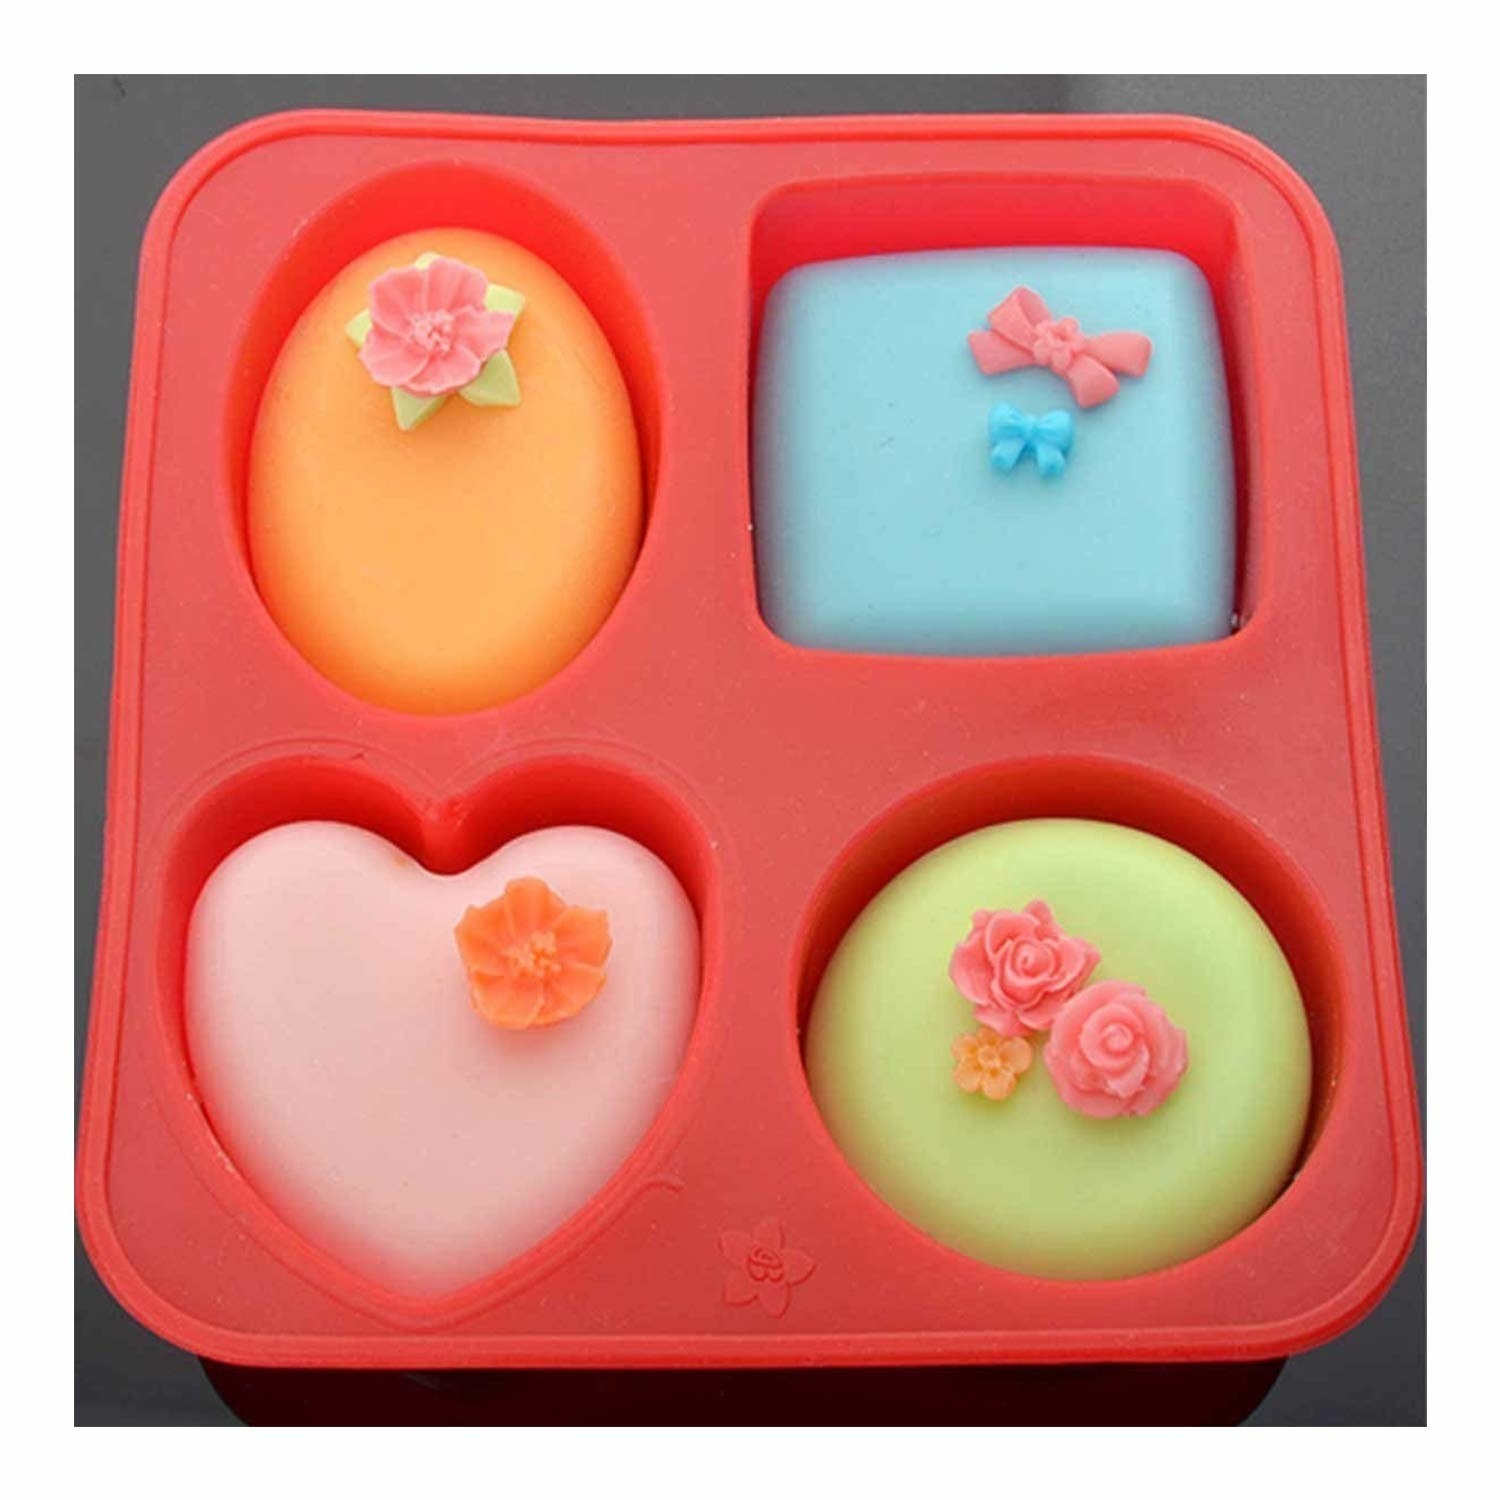 A mould with oval, square, round and heart-shaped slots